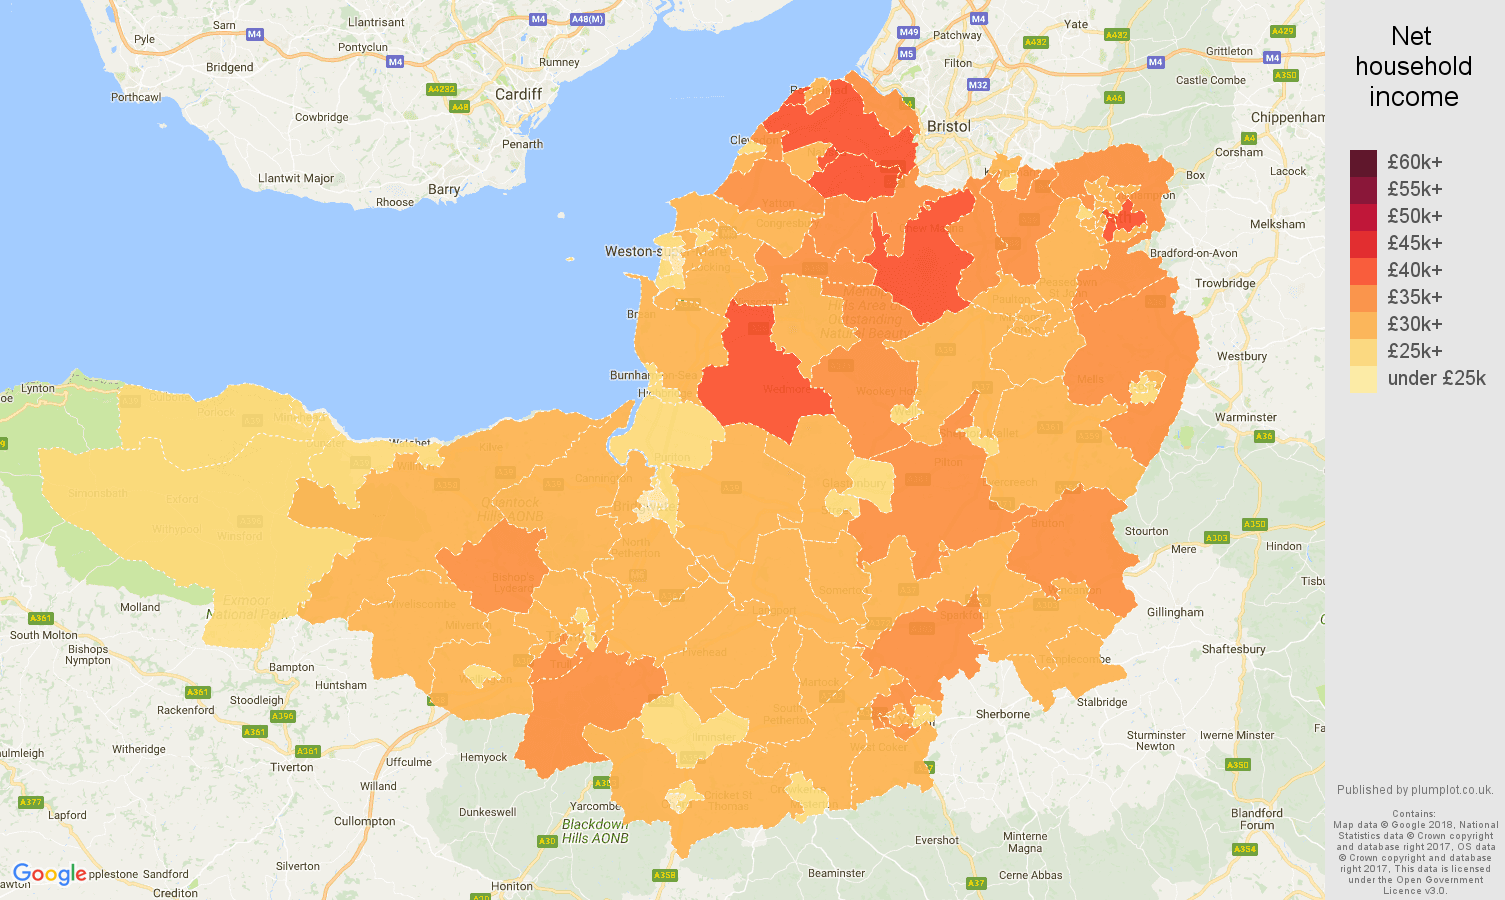 Somerset net household income map